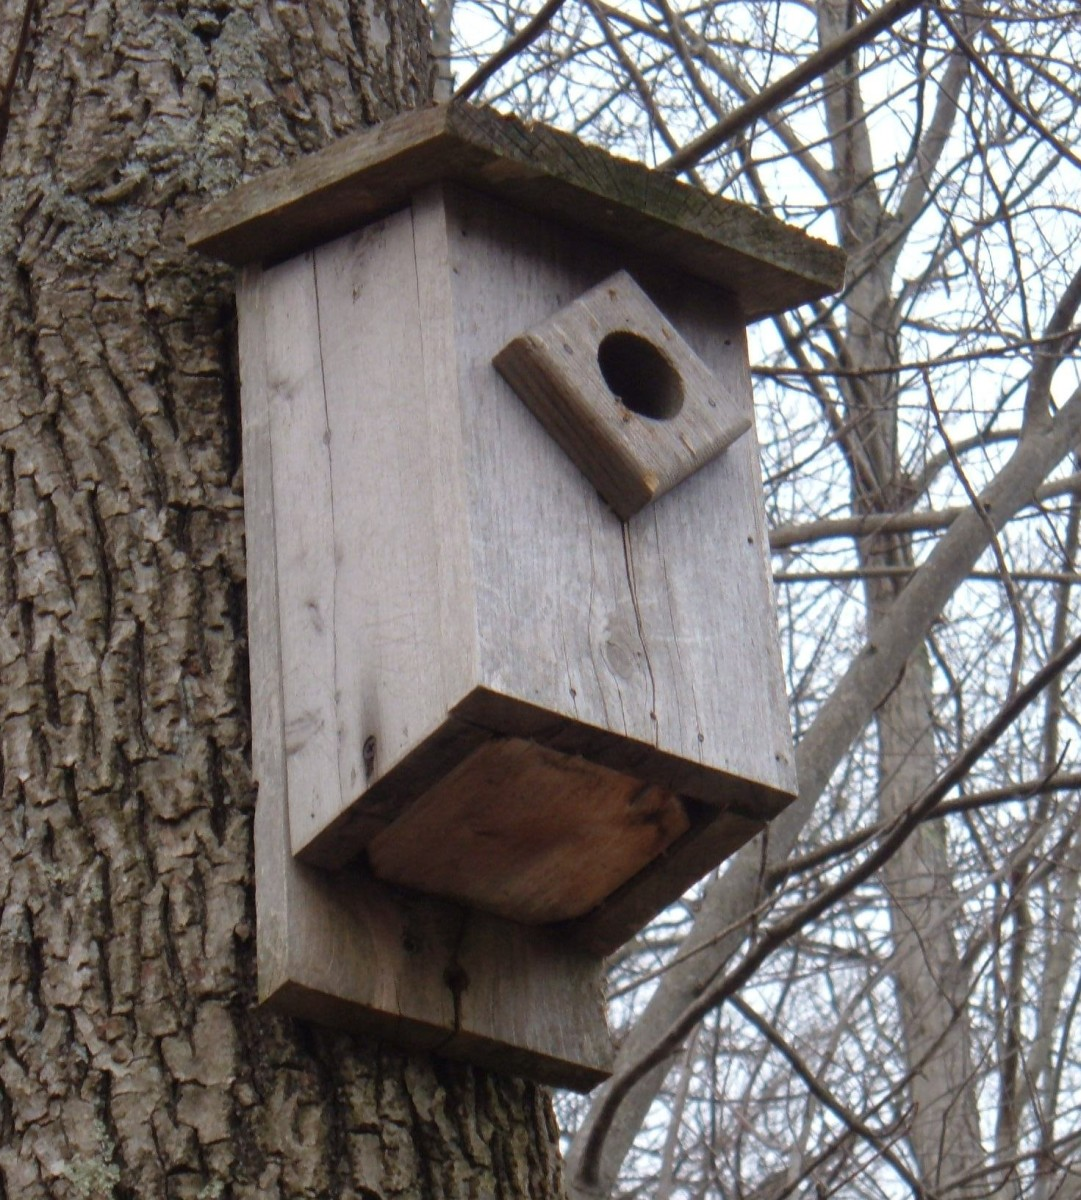 How to Build a Bluebird House: Nest Box Plans